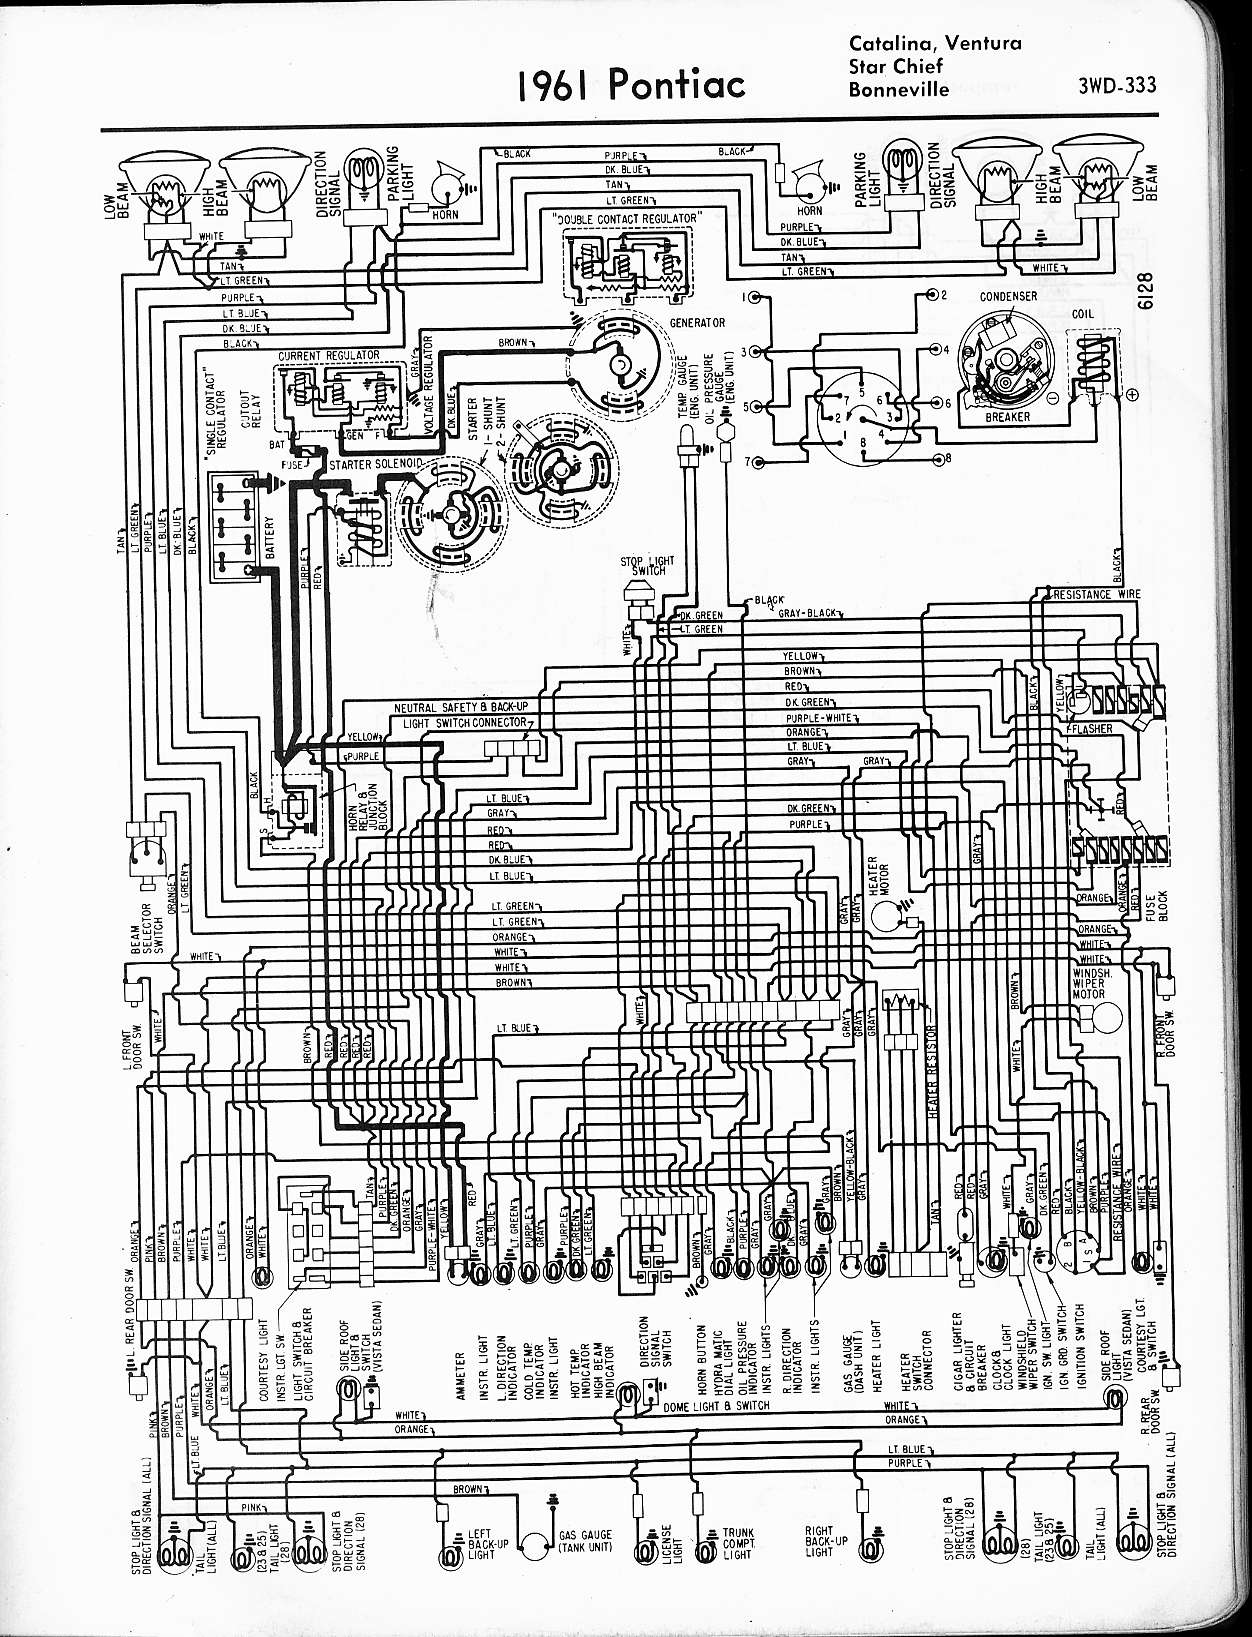 68 Pontiac Gto Ignition Wiring Schematics Diagrams 1966 Grand Prix Diagram Free Download 1968 Expert Rh Atcobennettrecoveries Com 66